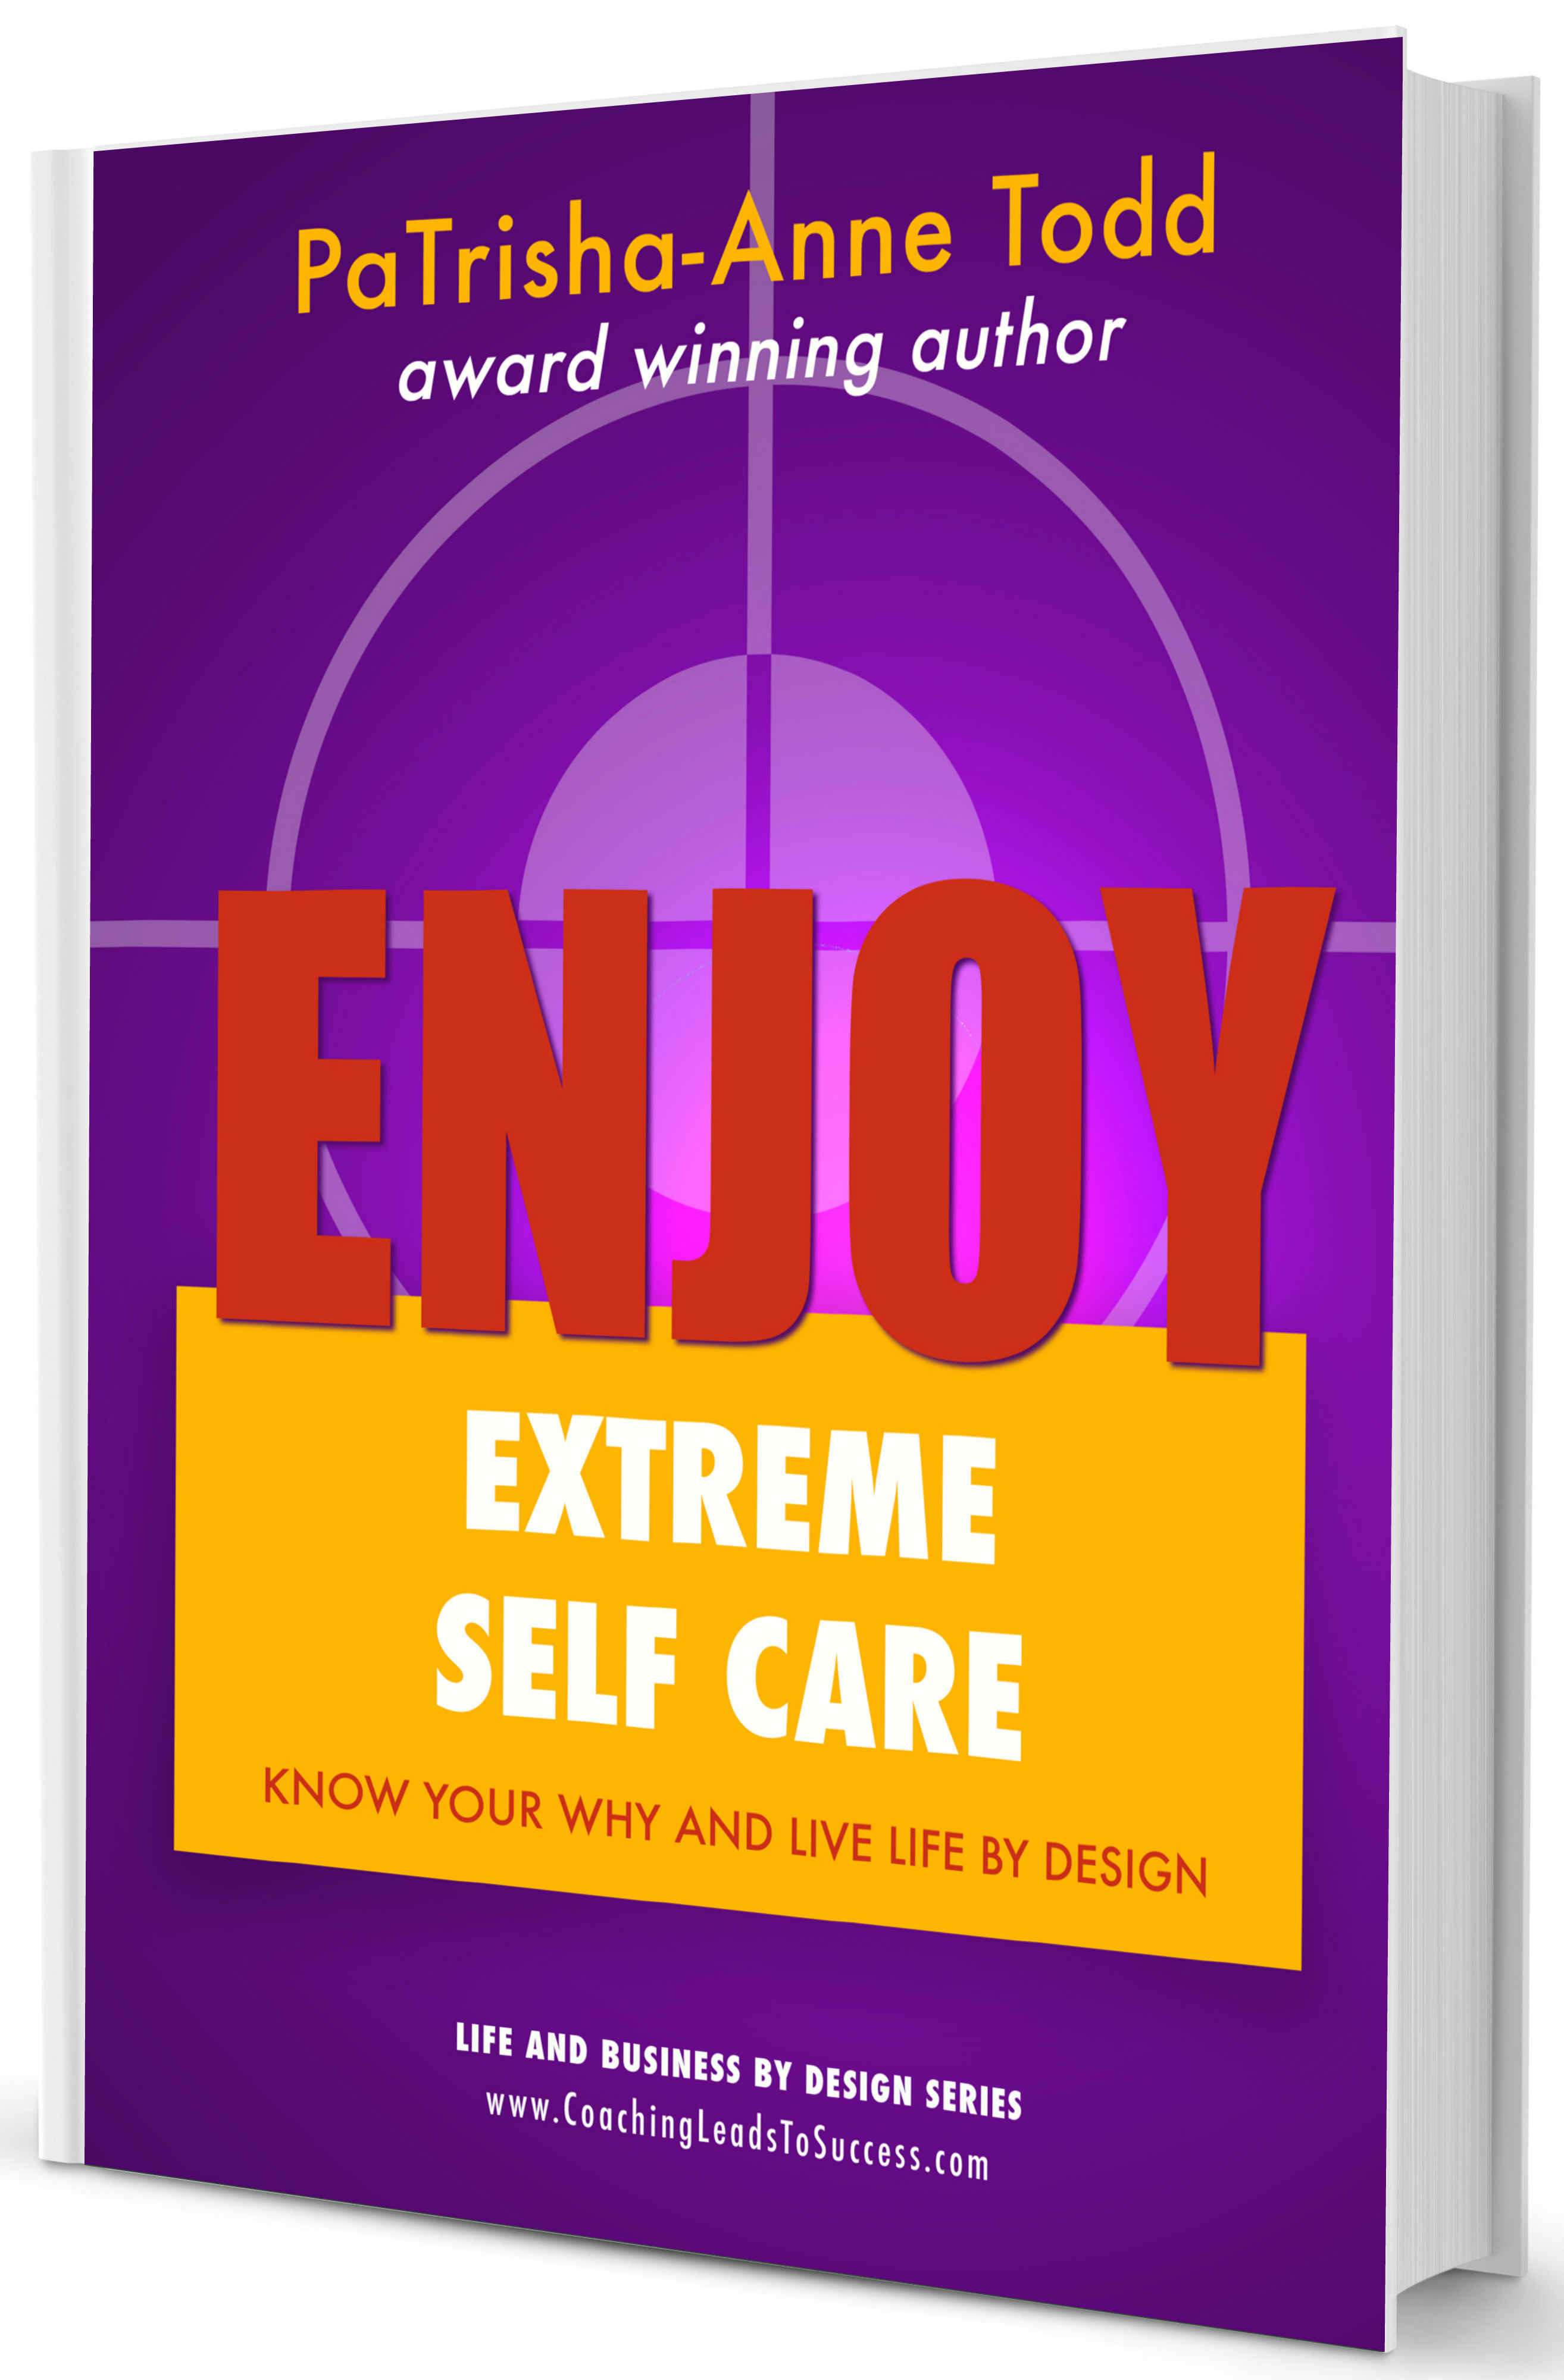 Extreme Self Care by PaTrisha-Anne Todd